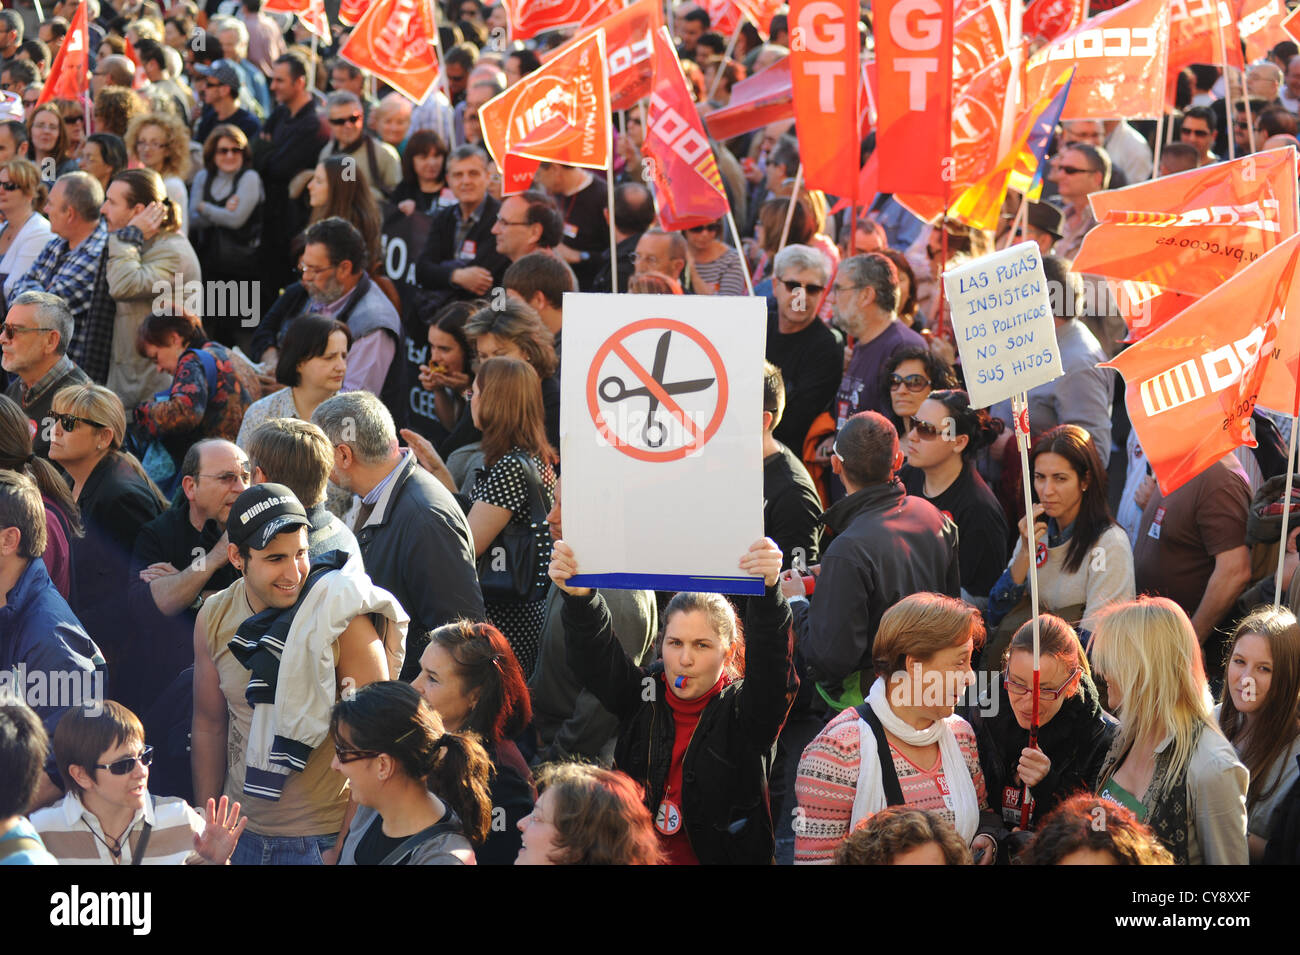 Anti-austerity protest against budget cuts in the Spanish city of Valencia in 2012. - Stock Image